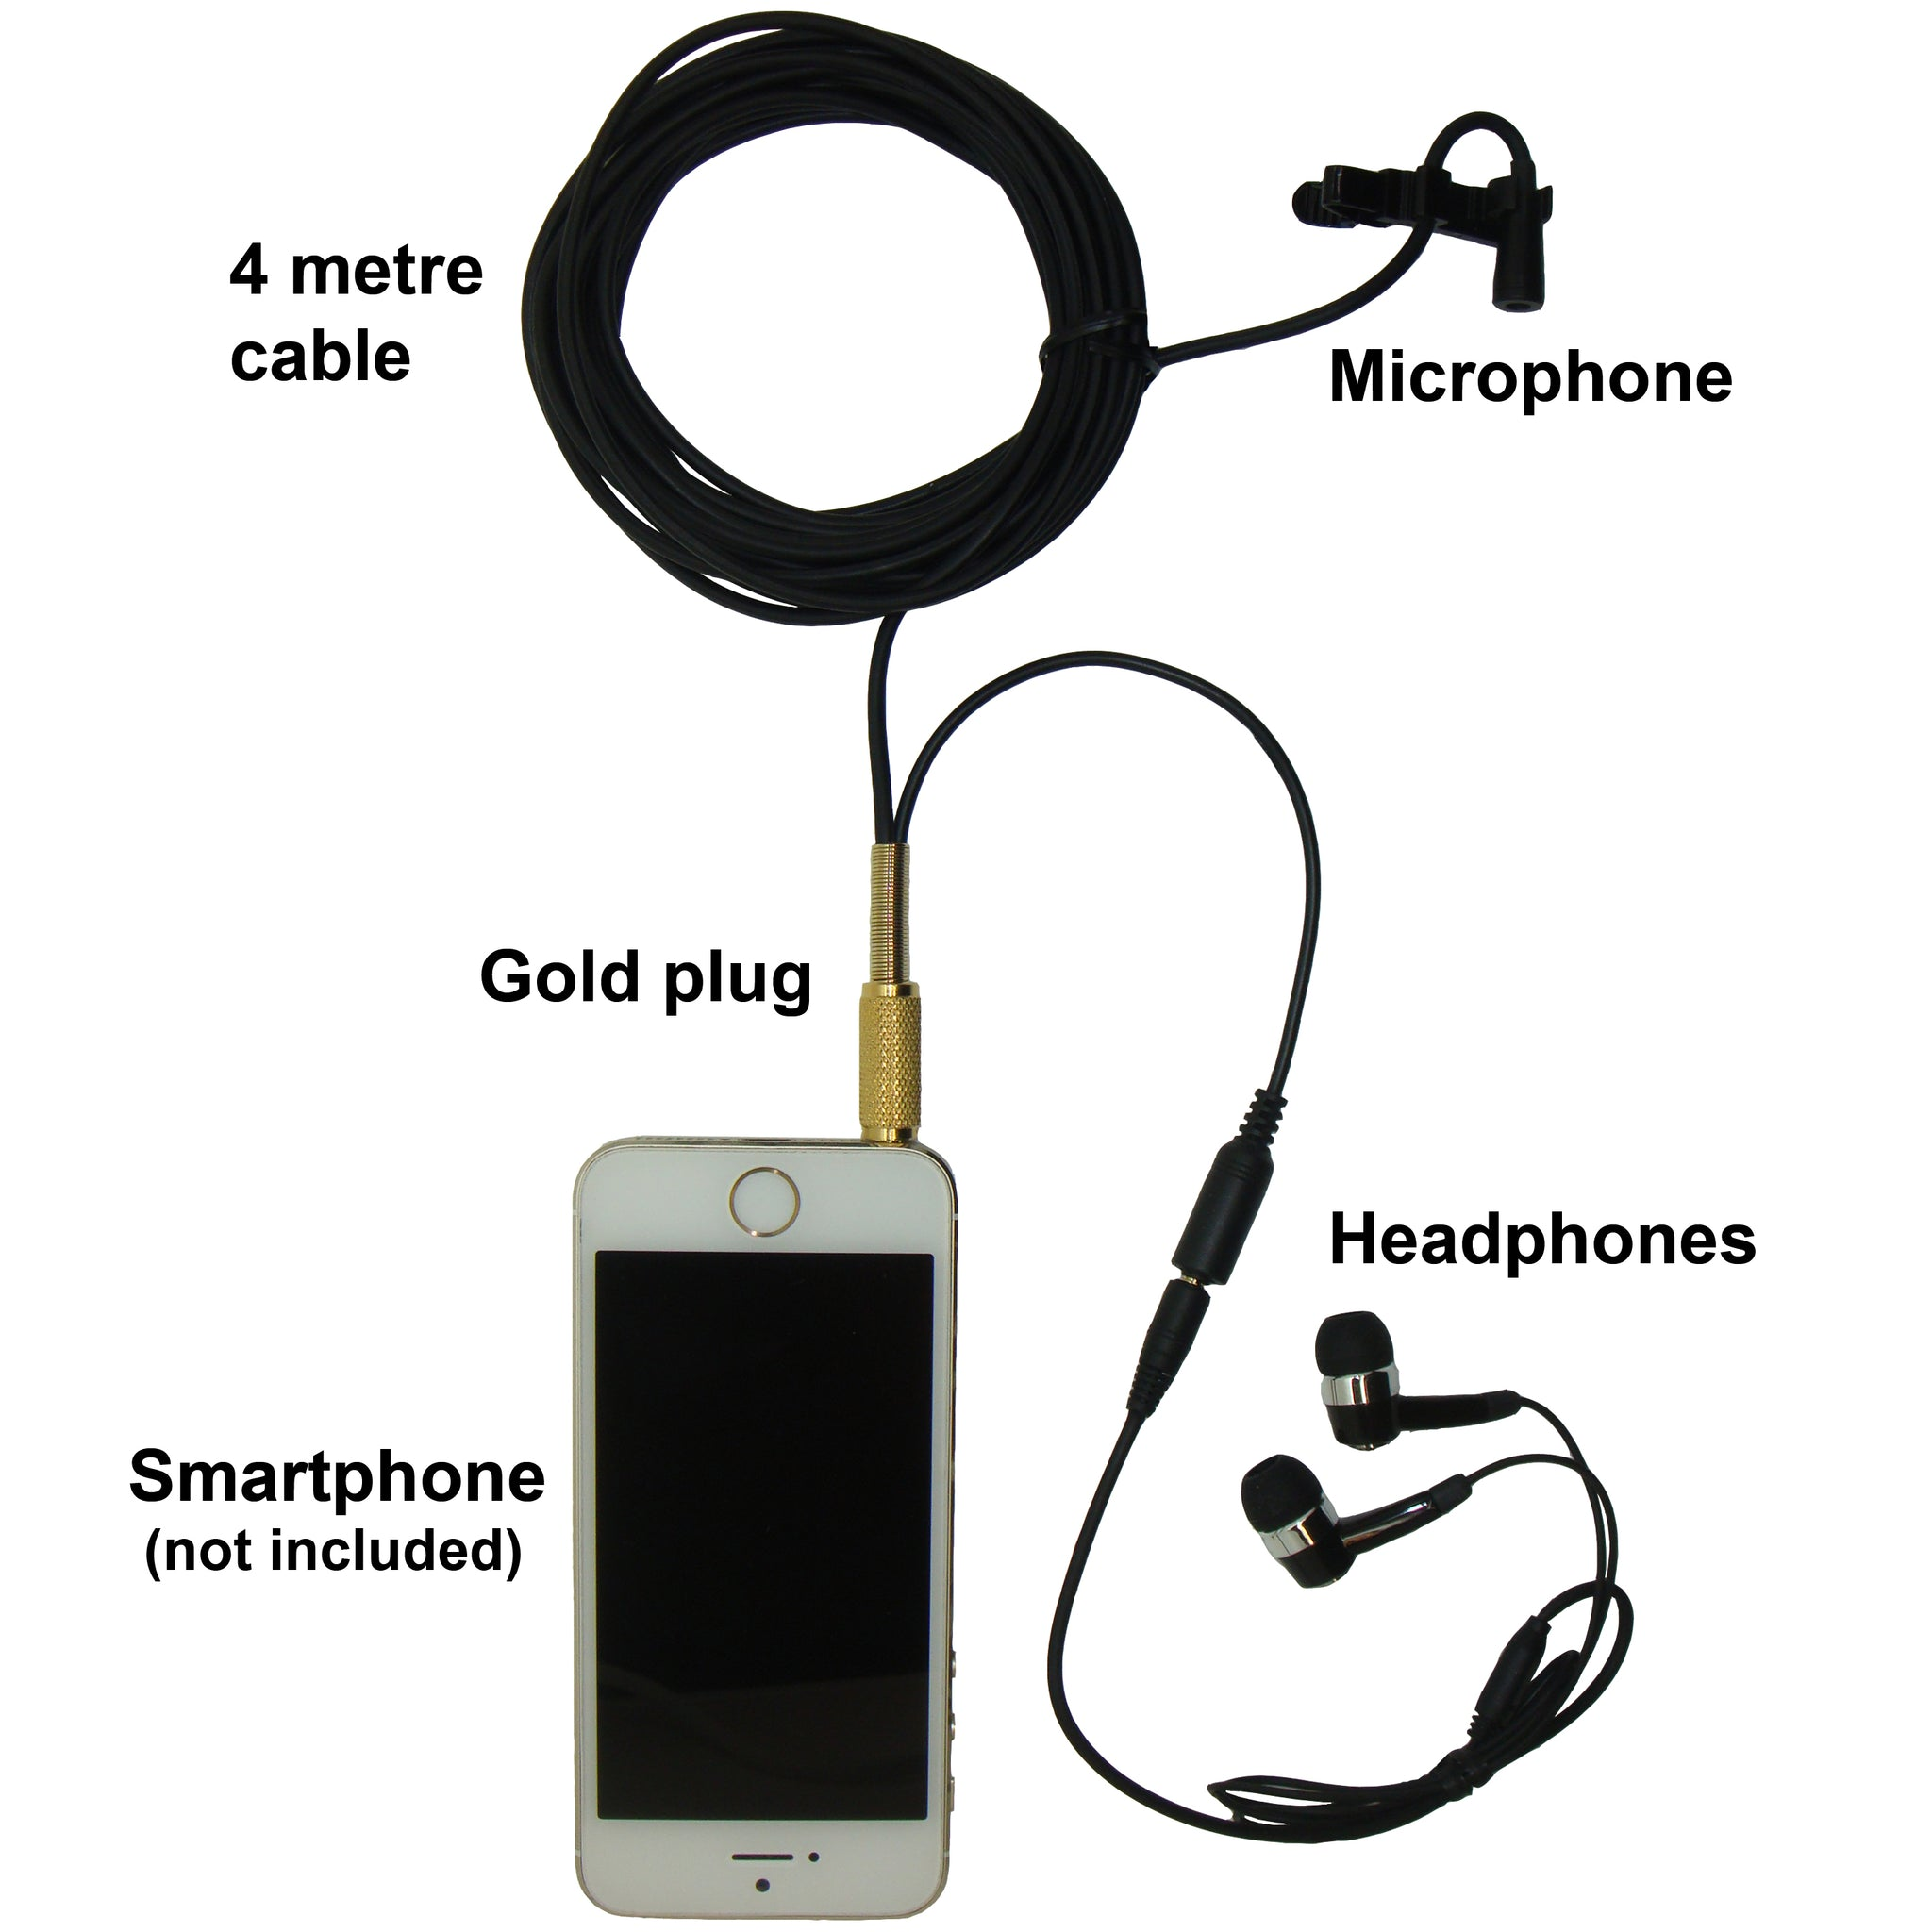 PROFESSIONAL SOUND RECORDER MICROPHONE FOR SMARTPHONE VOICE